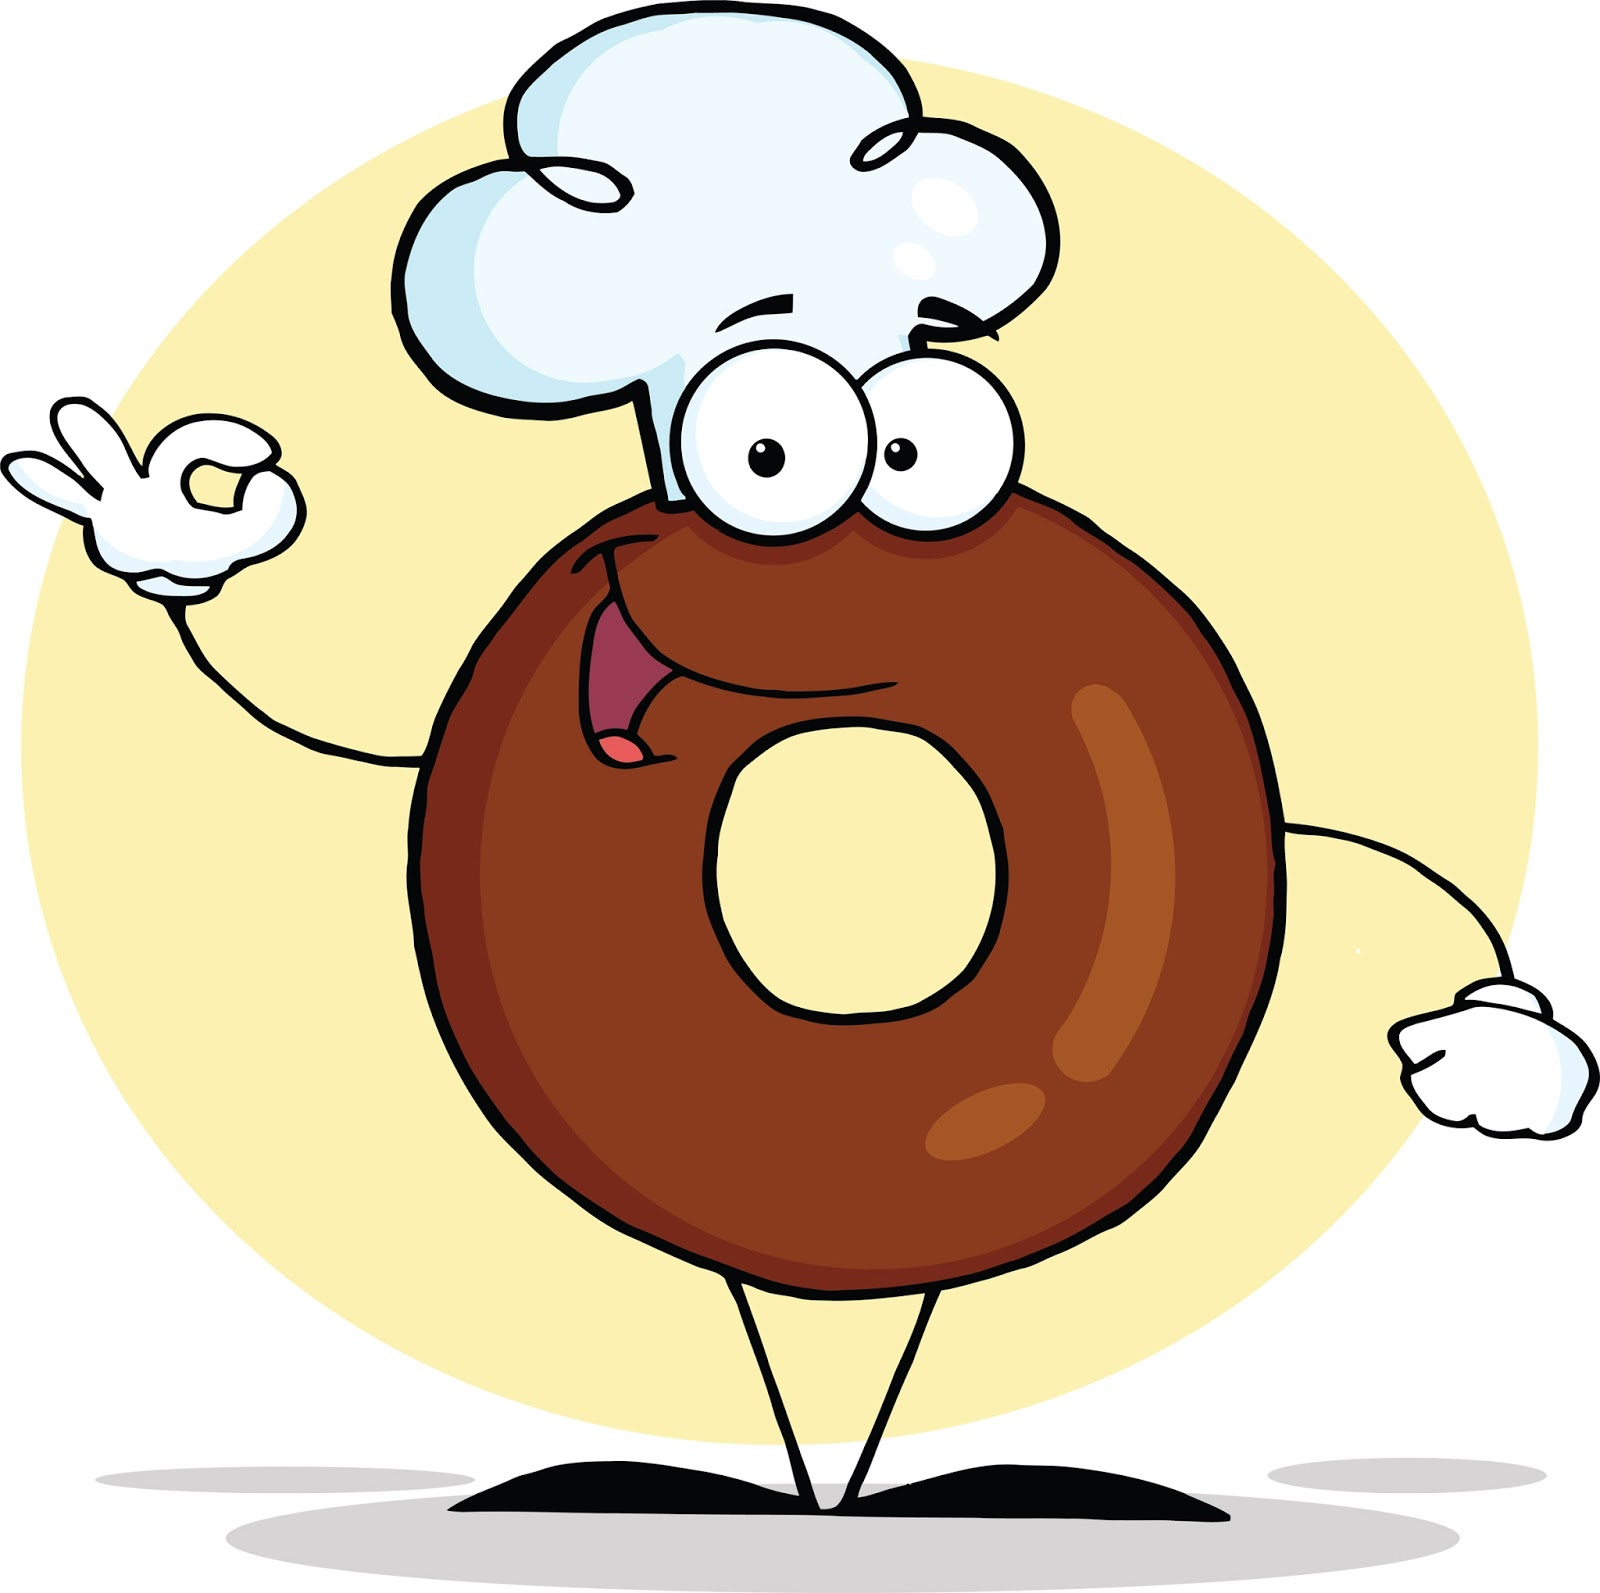 Cartoon Doughnut Factory: Joyful Expressions: Good Evening On Sunday, July 7